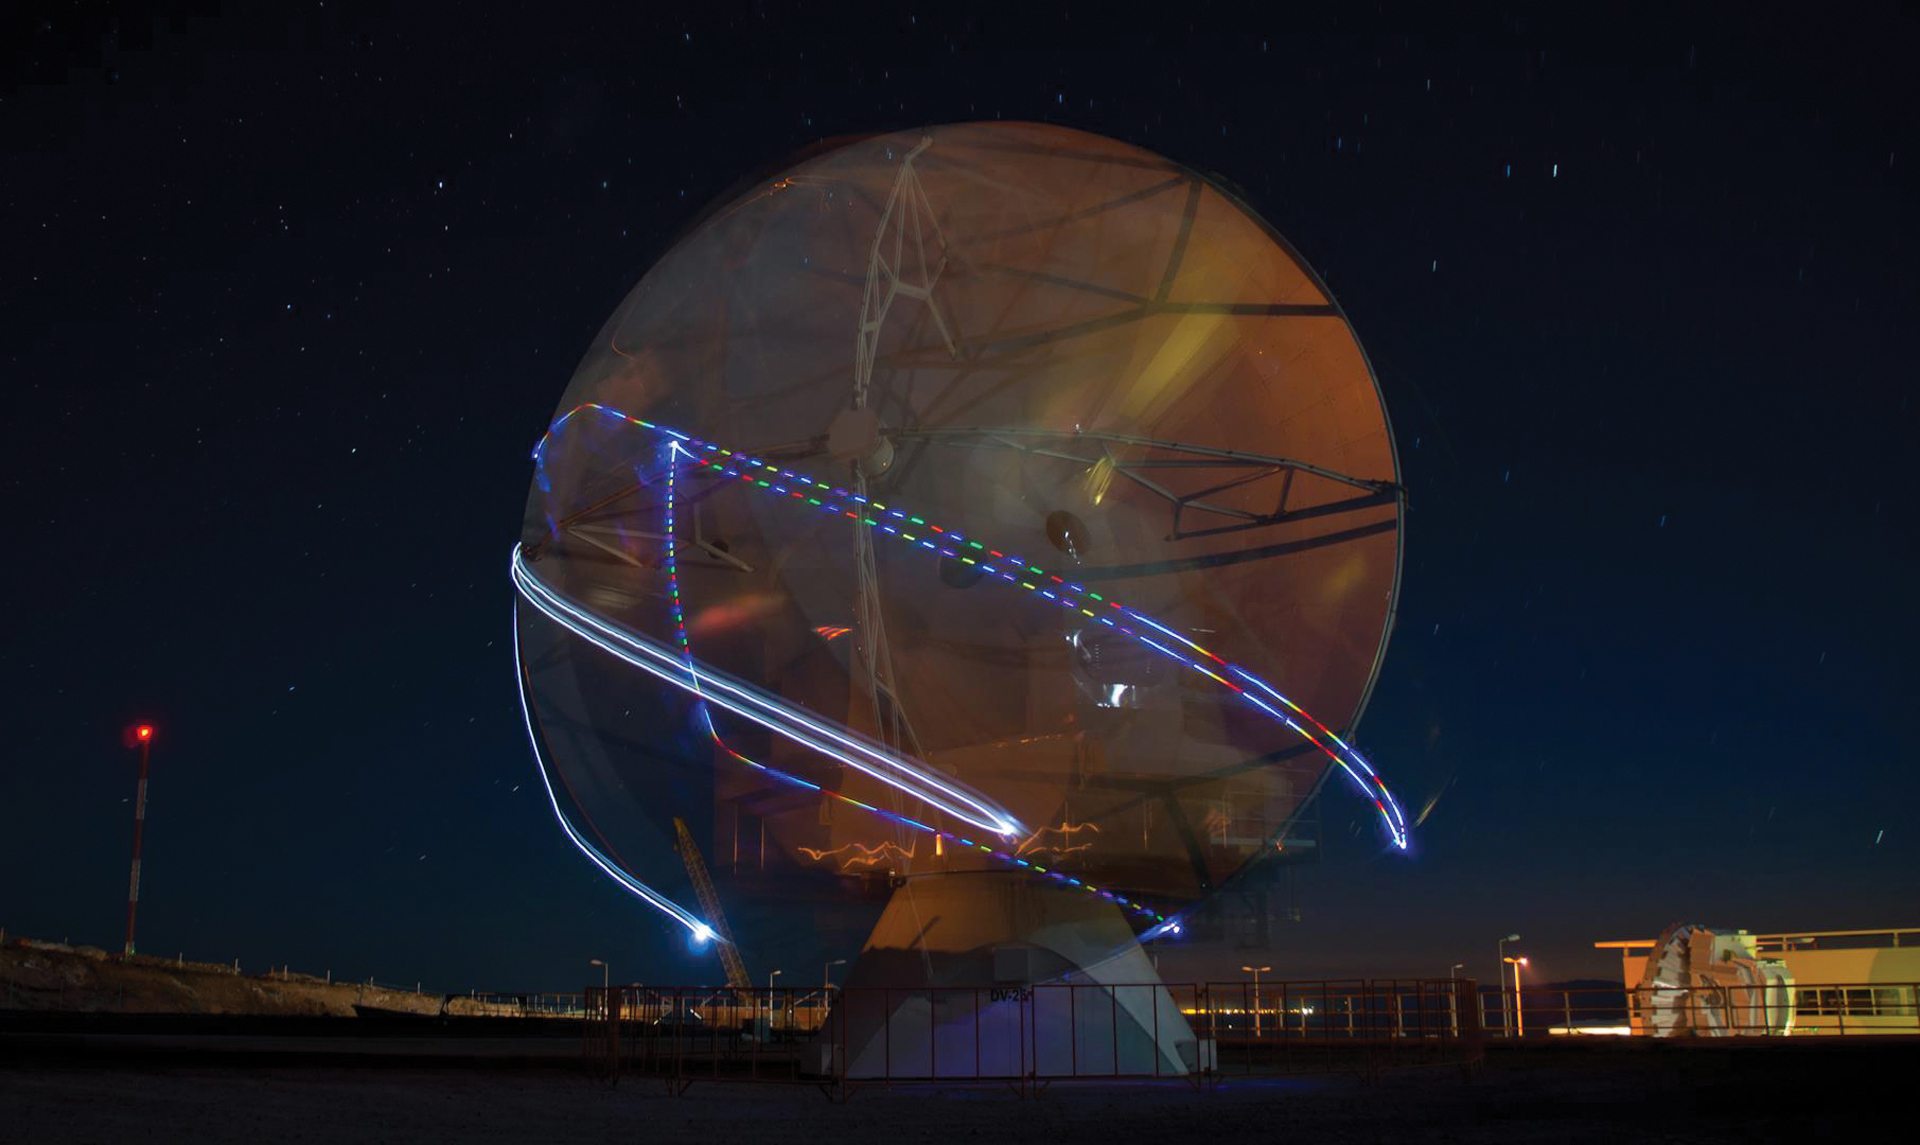 Long exposure photograph of lights placed on ALMA antenna